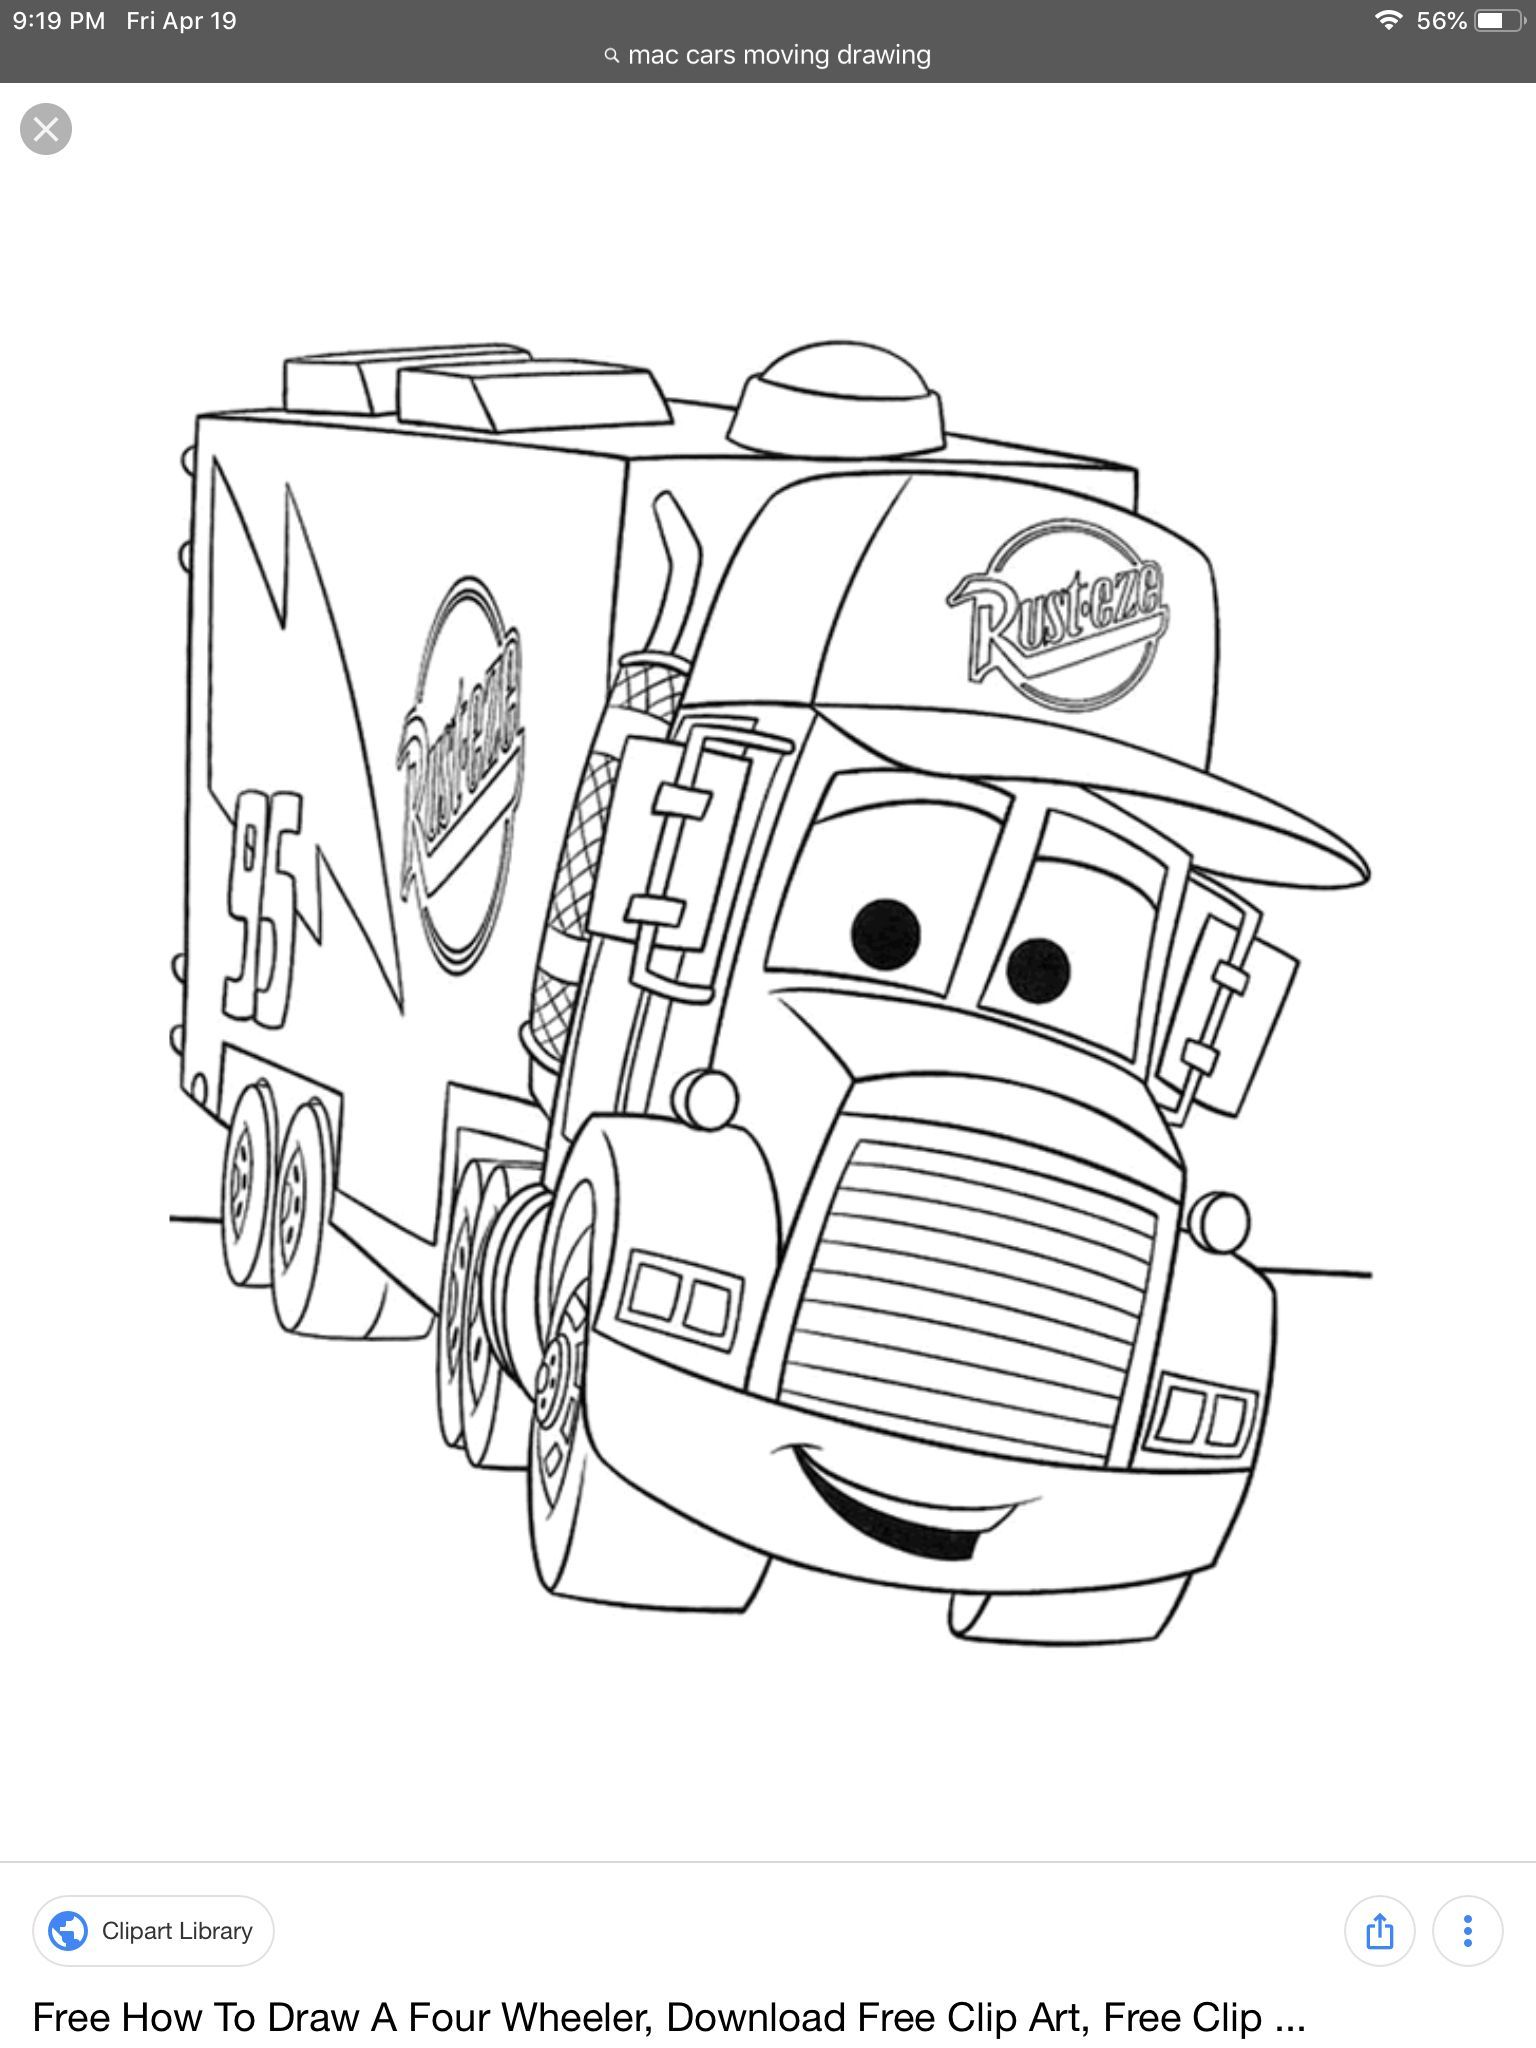 Pin By Maggie Smit On Hailey S Project Cars Coloring Pages Monster Truck Coloring Pages Truck Coloring Pages Disney Coloring Pages